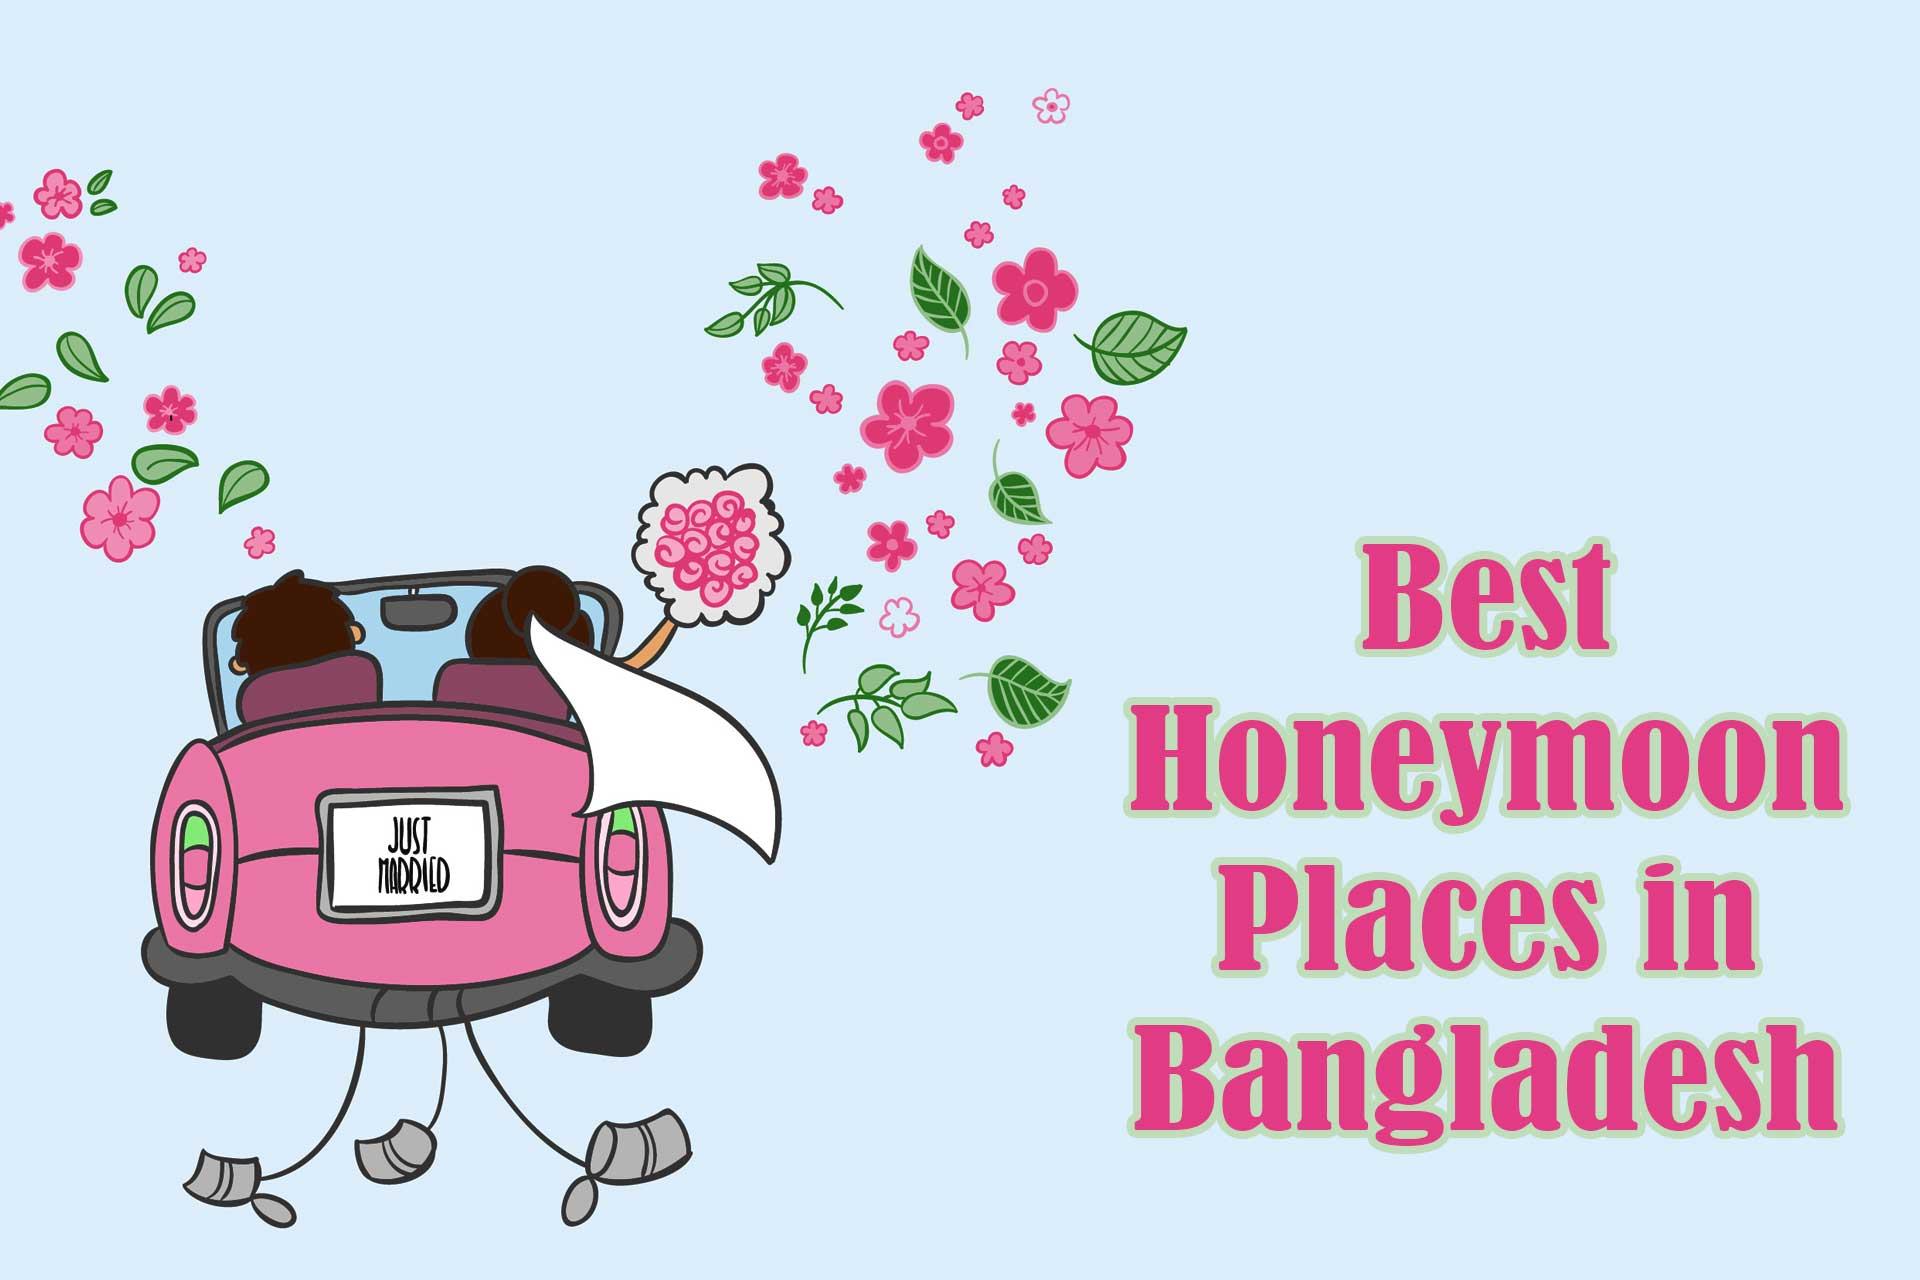 Best Honeymoon Places in Bangladesh for Newly Married Couples